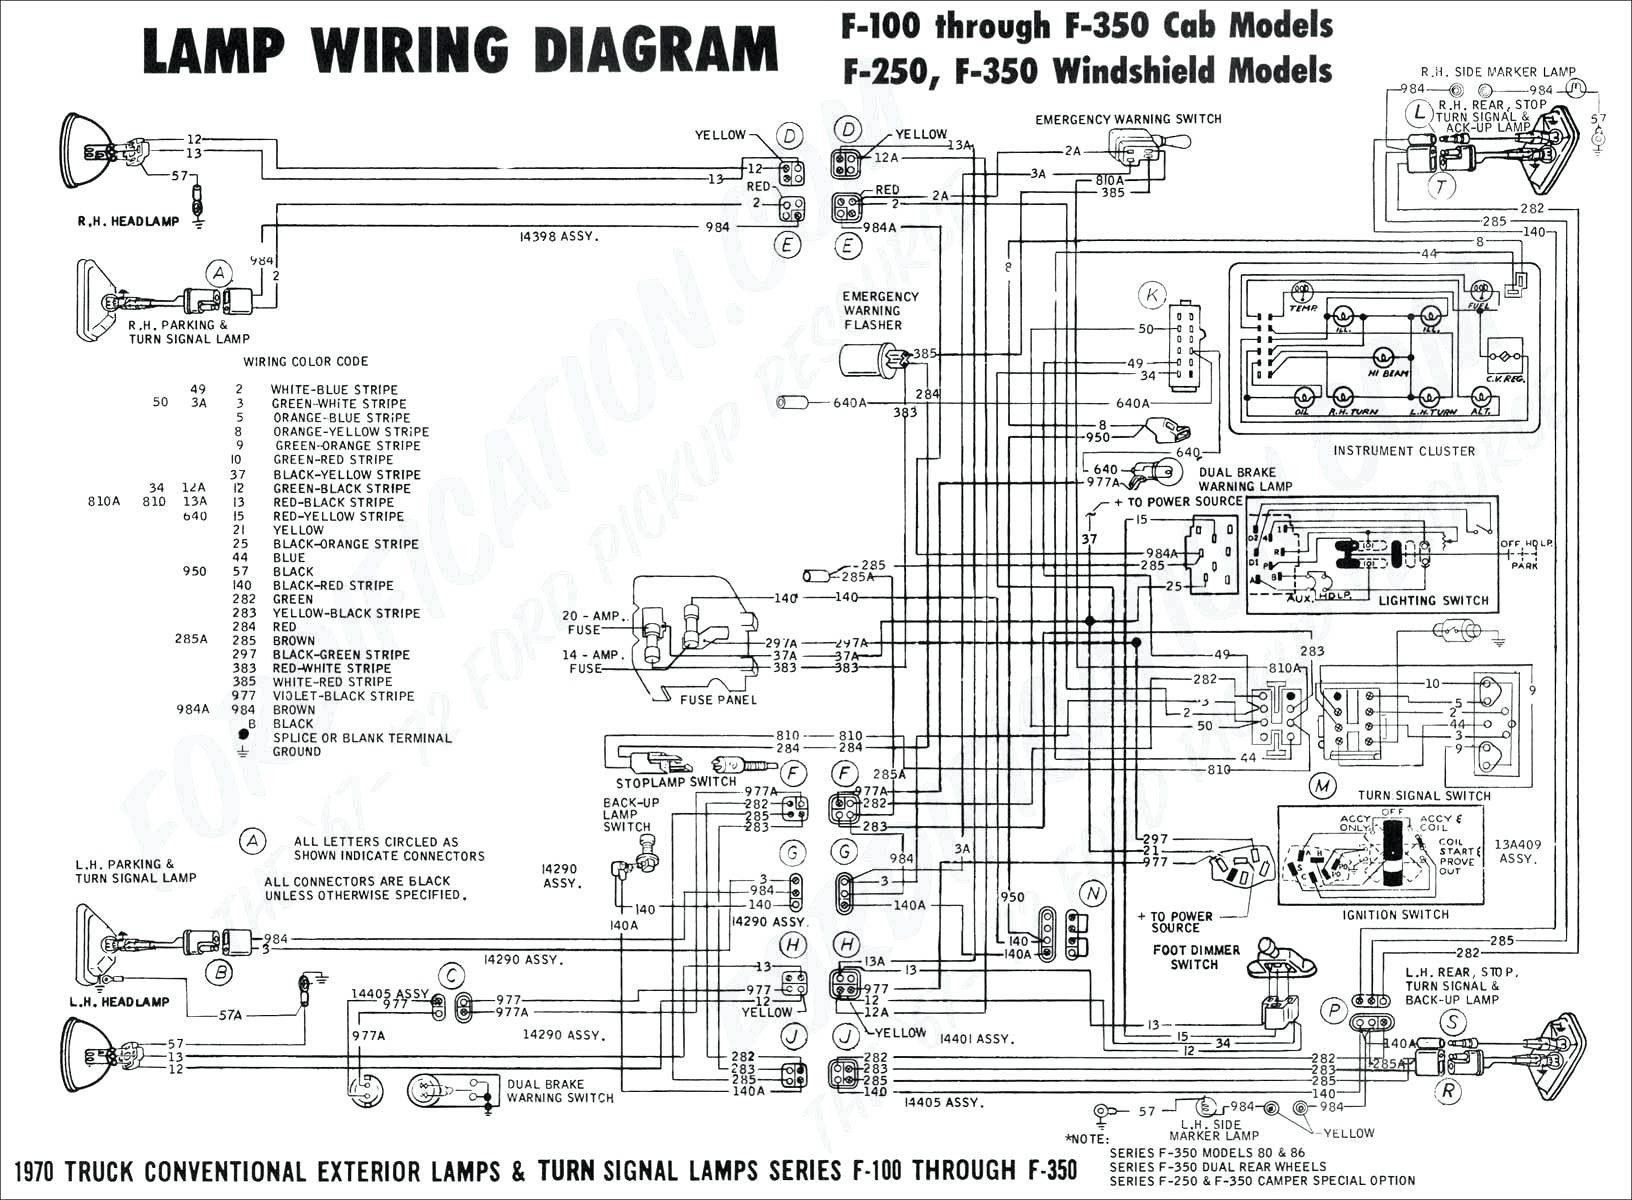 Diagram 2003 Gmc Sonoma Fuse Diagram Full Version Hd Quality Fuse Diagram Sitexvargo Pretoriani It